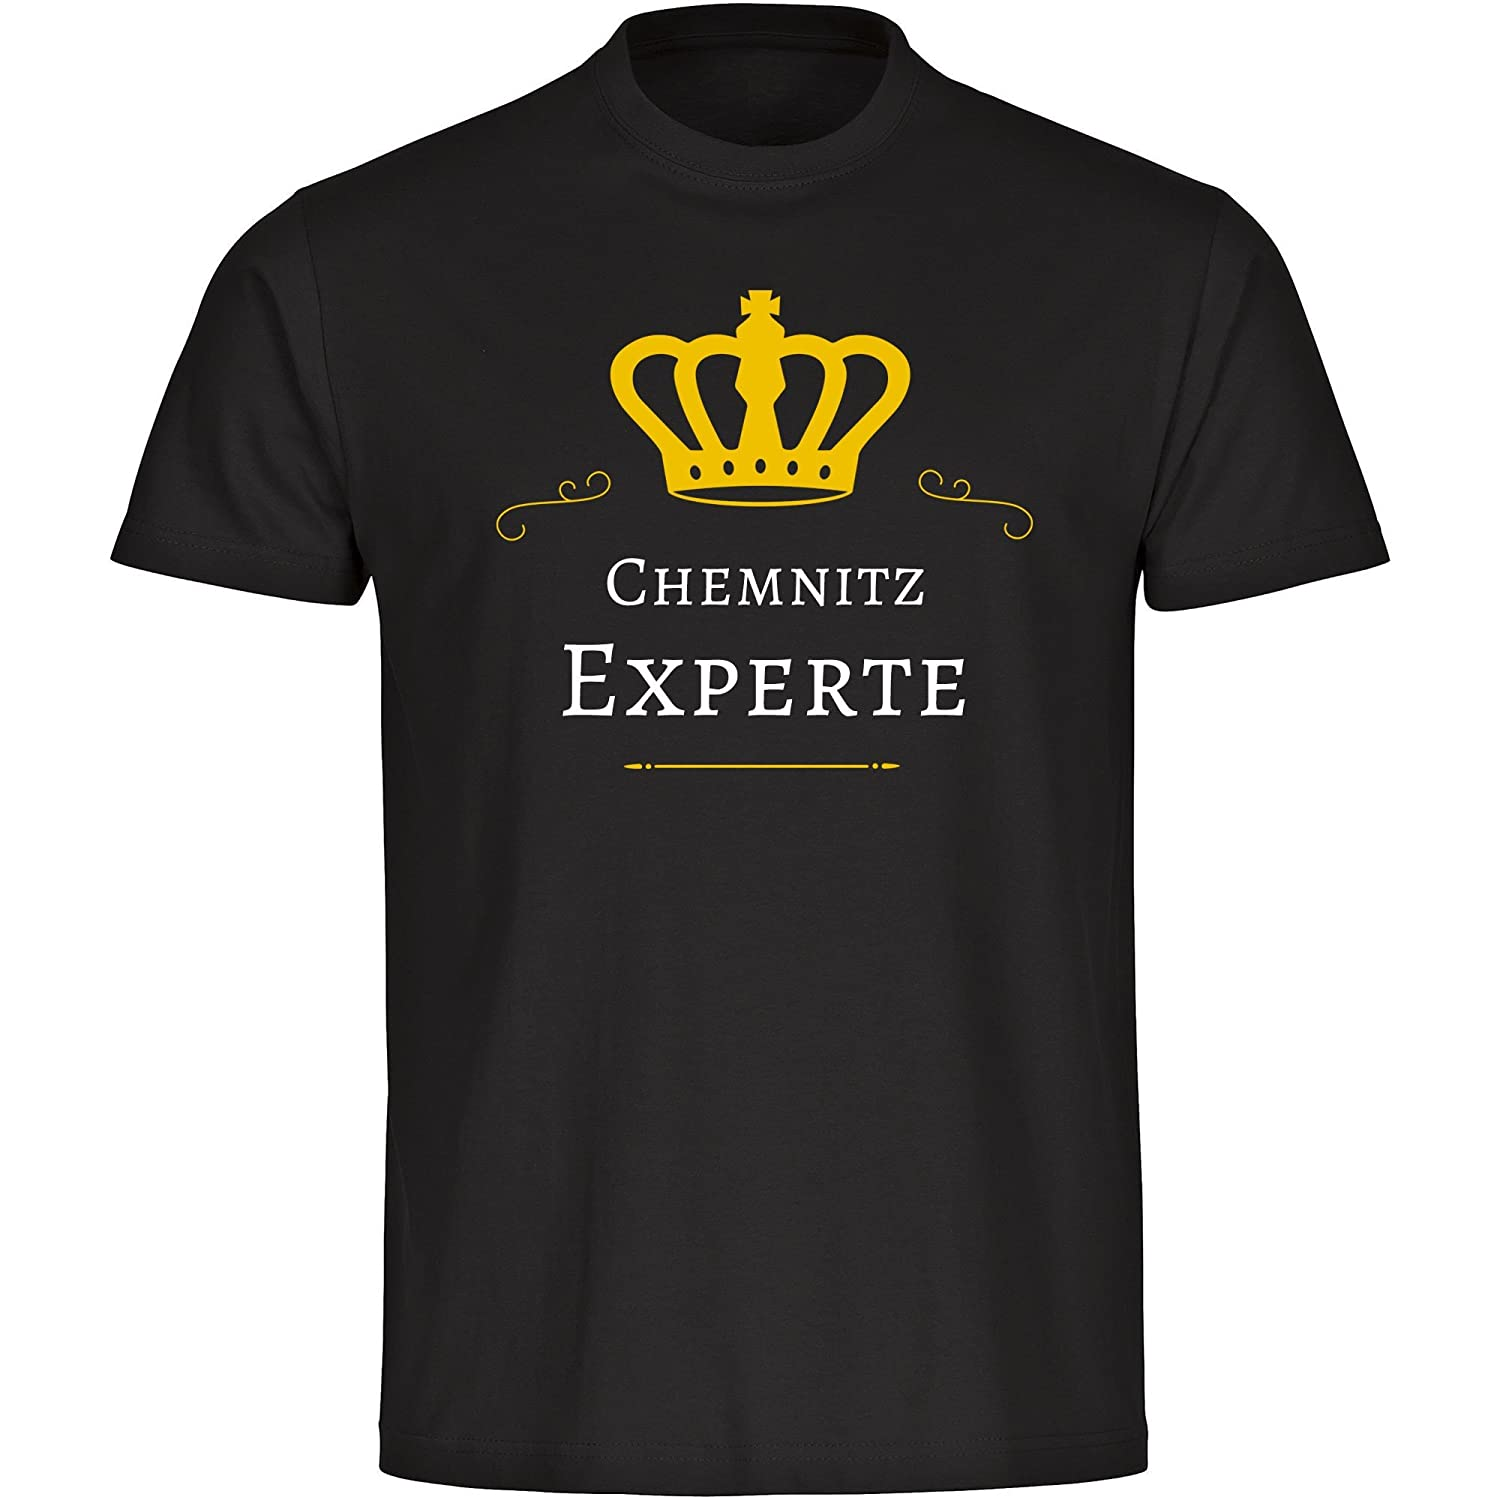 T-Shirt Short Sleeve Crew Neck Chemnitz Expert Black Men Size S to 5XL